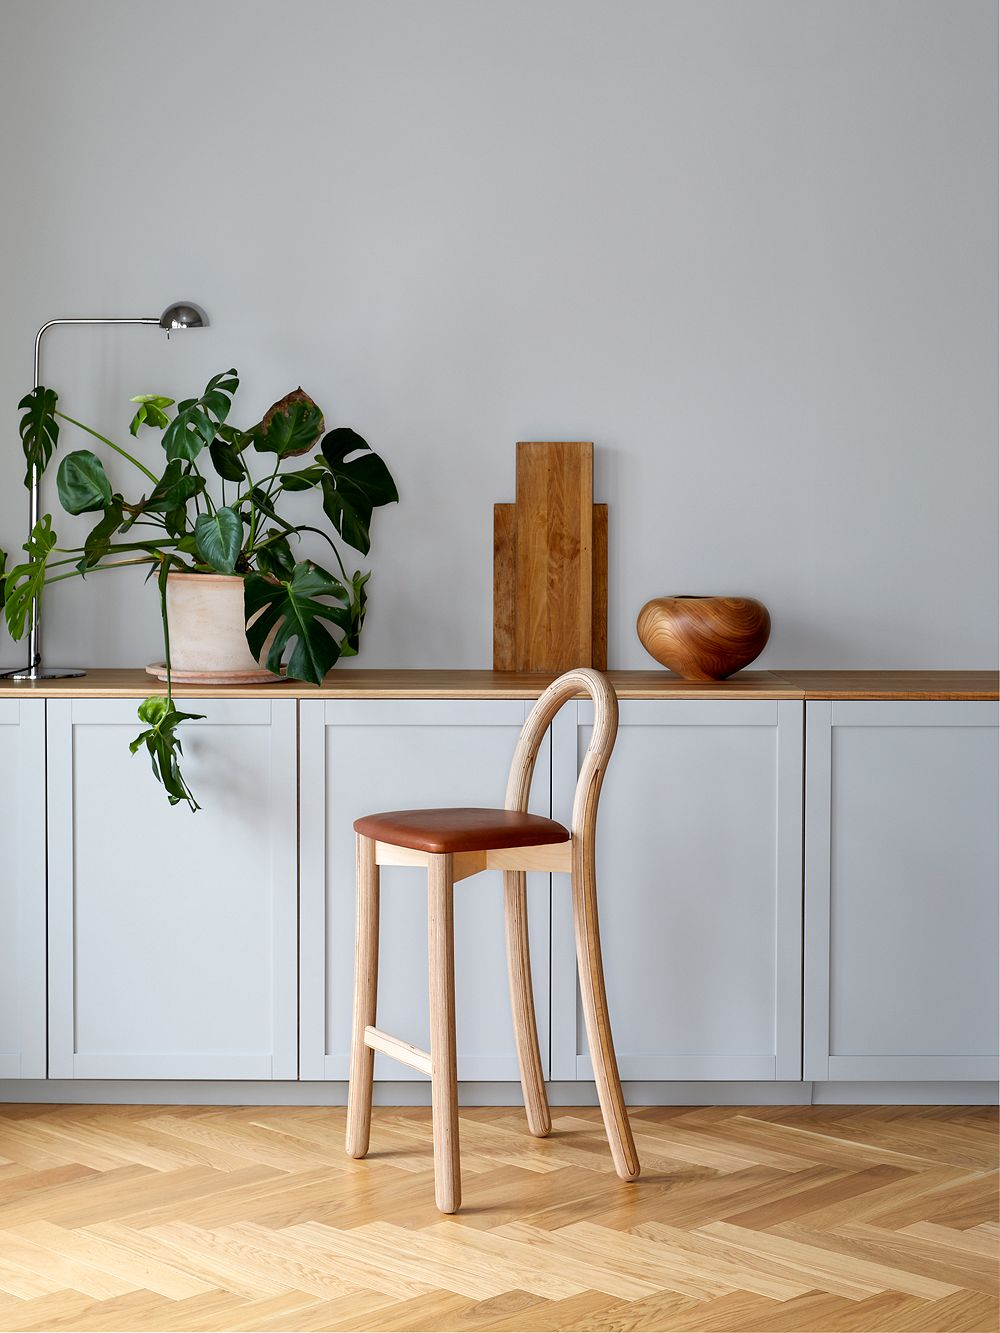 Made by Chioce's Goma bar chair